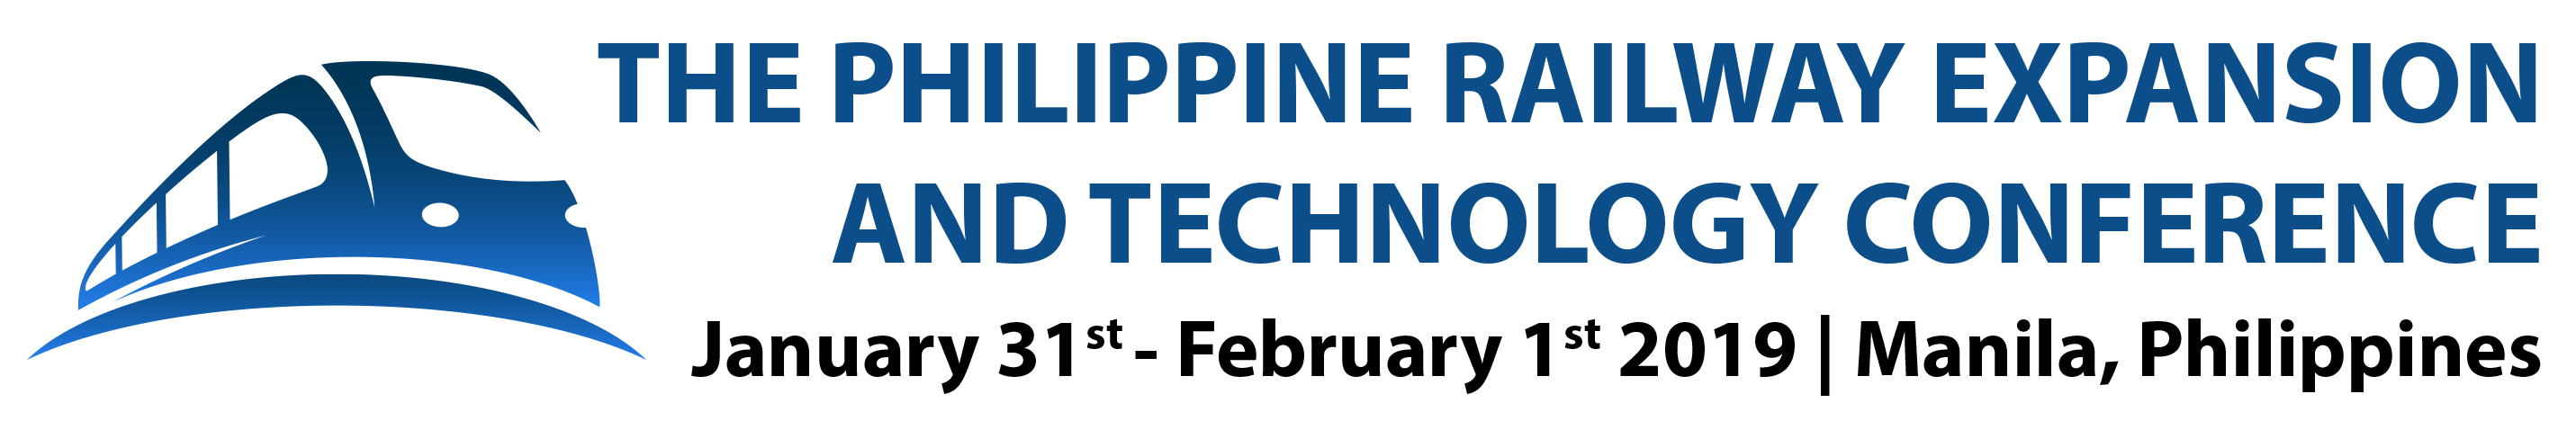 The Philippine Railway Expansion and Technology Conference